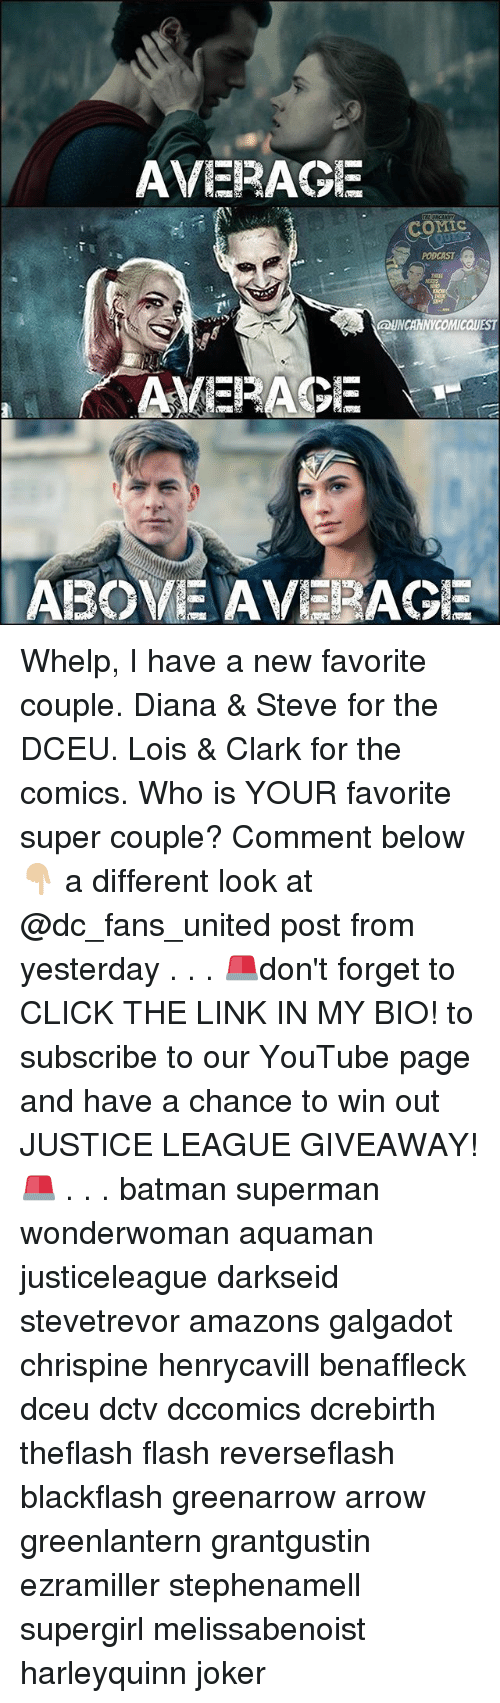 whelp: AVERAGE  COMIC  UNCANNICOMICQUEST  AVERAGE  ABOVE AVERAGE Whelp, I have a new favorite couple. Diana & Steve for the DCEU. Lois & Clark for the comics. Who is YOUR favorite super couple? Comment below 👇🏼 a different look at @dc_fans_united post from yesterday . . . 🚨don't forget to CLICK THE LINK IN MY BIO! to subscribe to our YouTube page and have a chance to win out JUSTICE LEAGUE GIVEAWAY!🚨 . . . batman superman wonderwoman aquaman justiceleague darkseid stevetrevor amazons galgadot chrispine henrycavill benaffleck dceu dctv dccomics dcrebirth theflash flash reverseflash blackflash greenarrow arrow greenlantern grantgustin ezramiller stephenamell supergirl melissabenoist harleyquinn joker